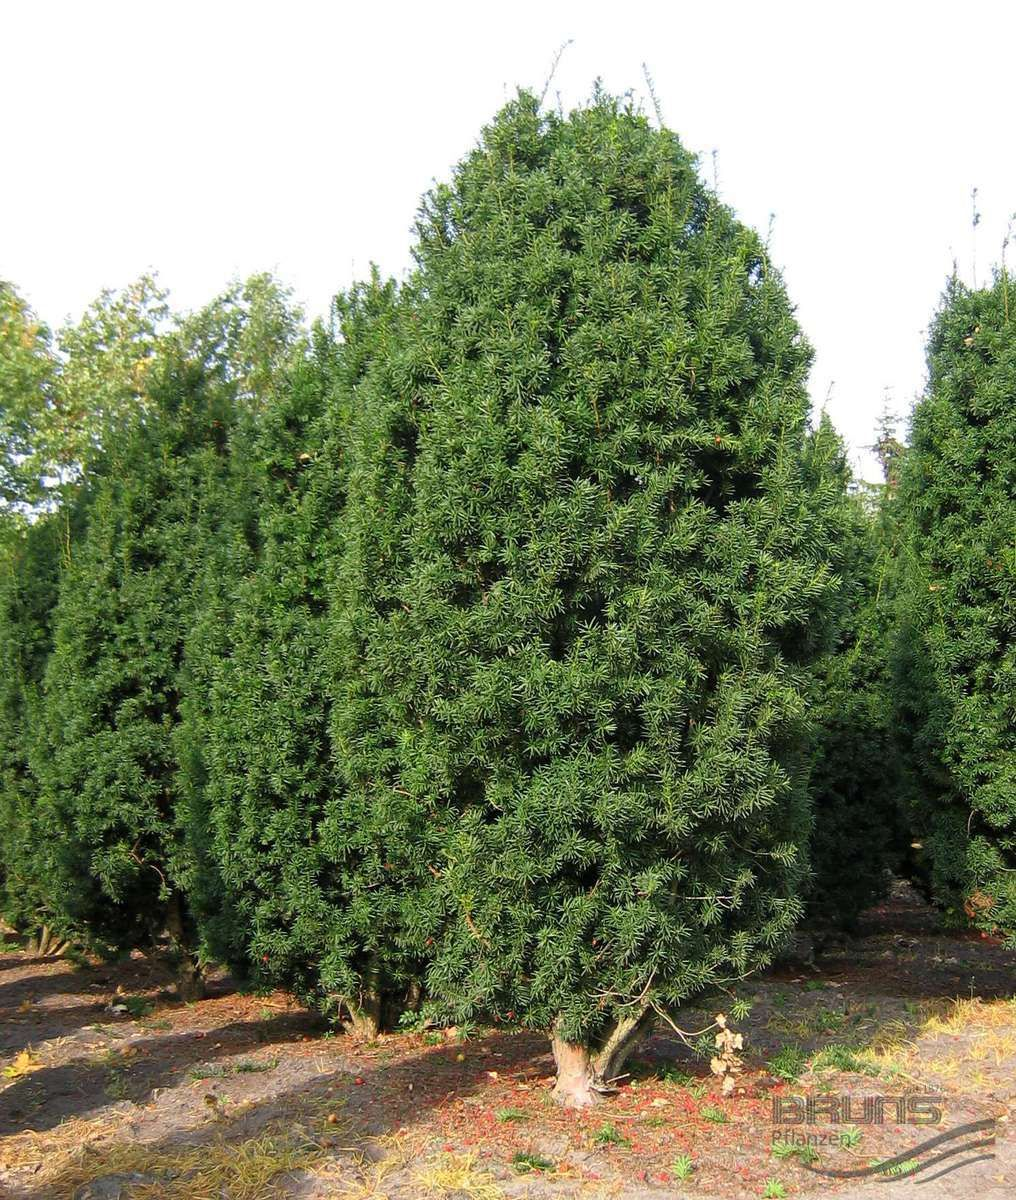 Evergreen Pflanzen taxus x media hicksii pflanzen null bruns site williamson